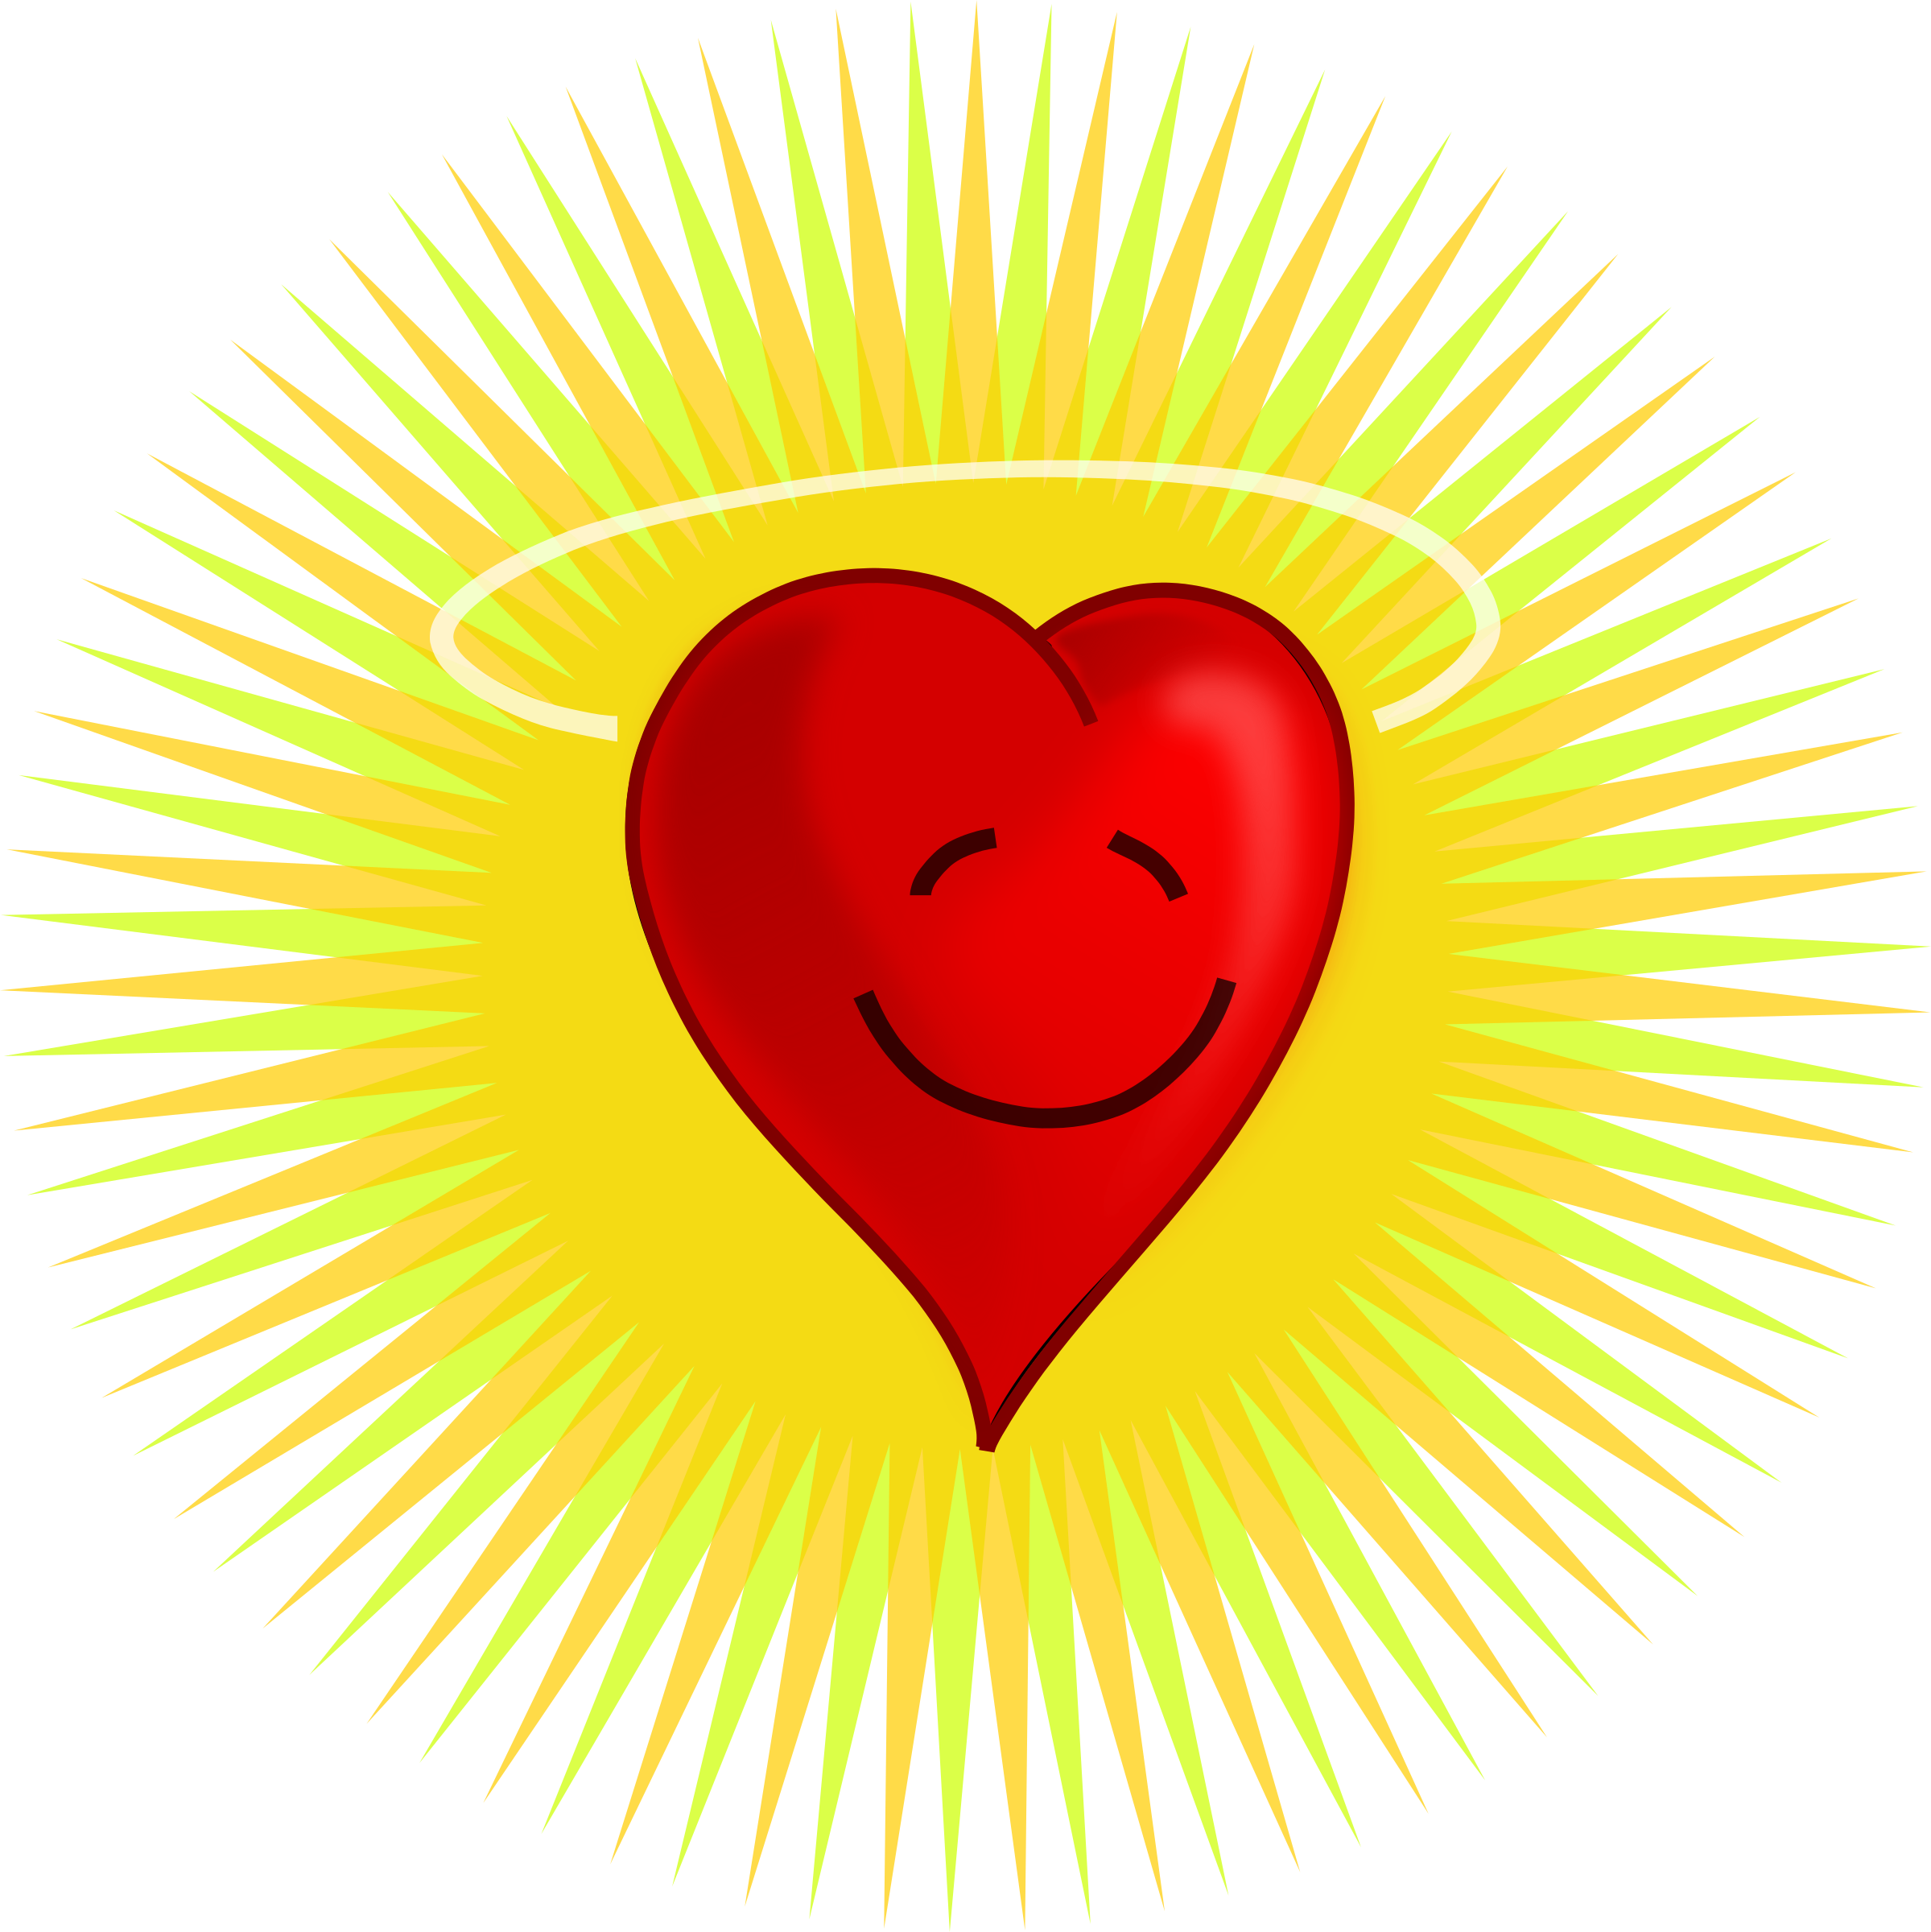 Hearts clipart sun. Happy heart icons png